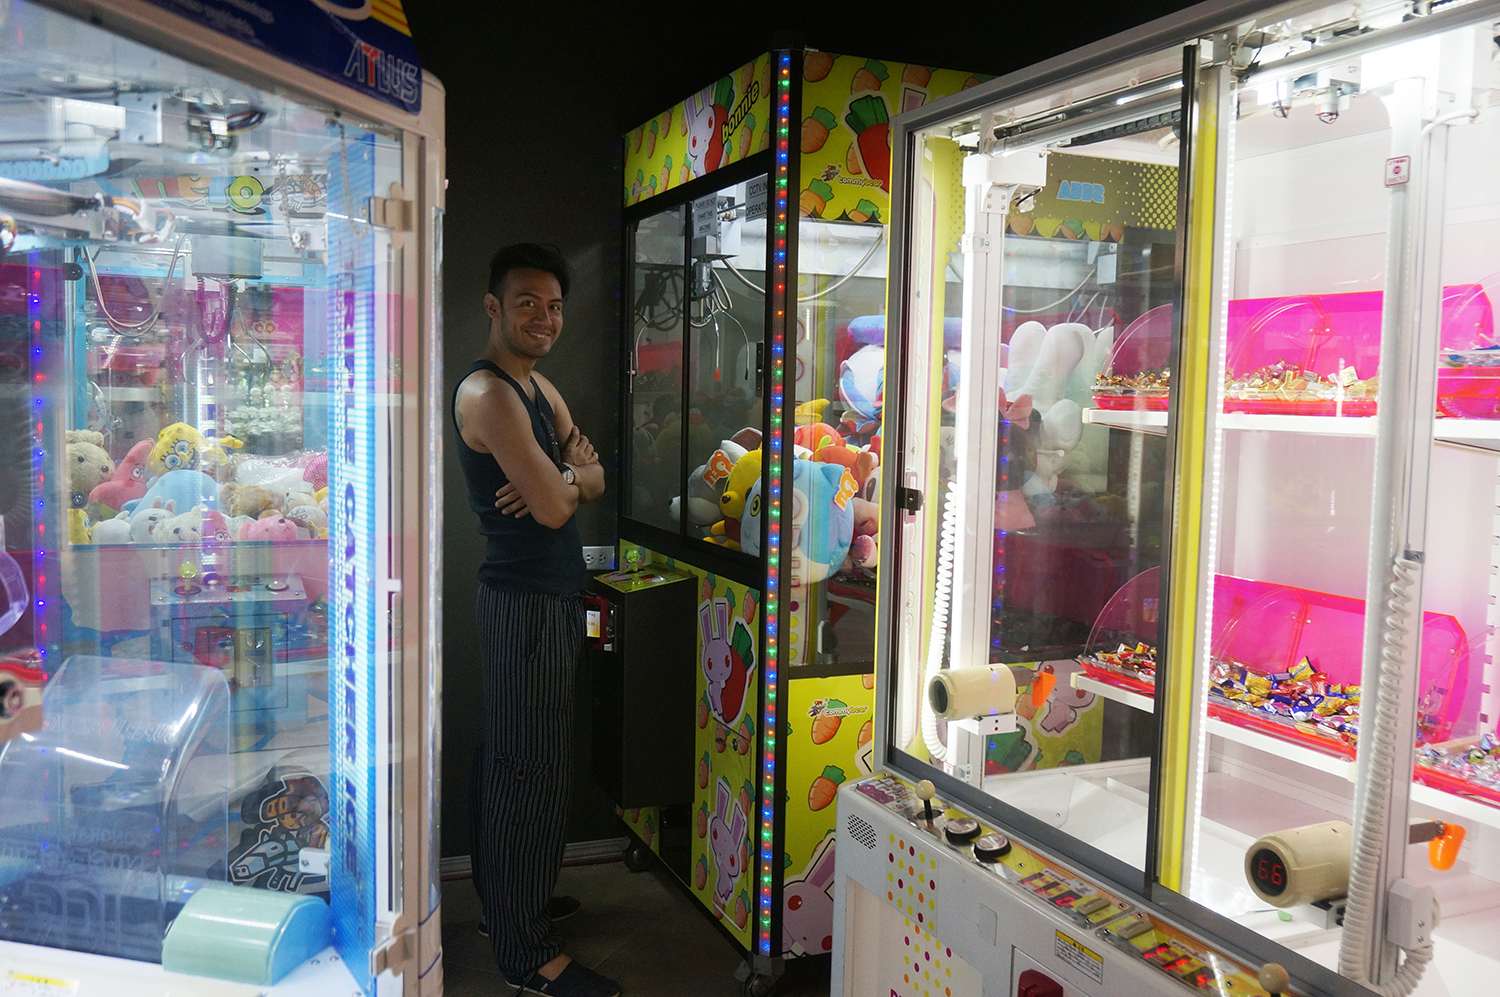 Amazing Arcade: Dreamland in Aruba